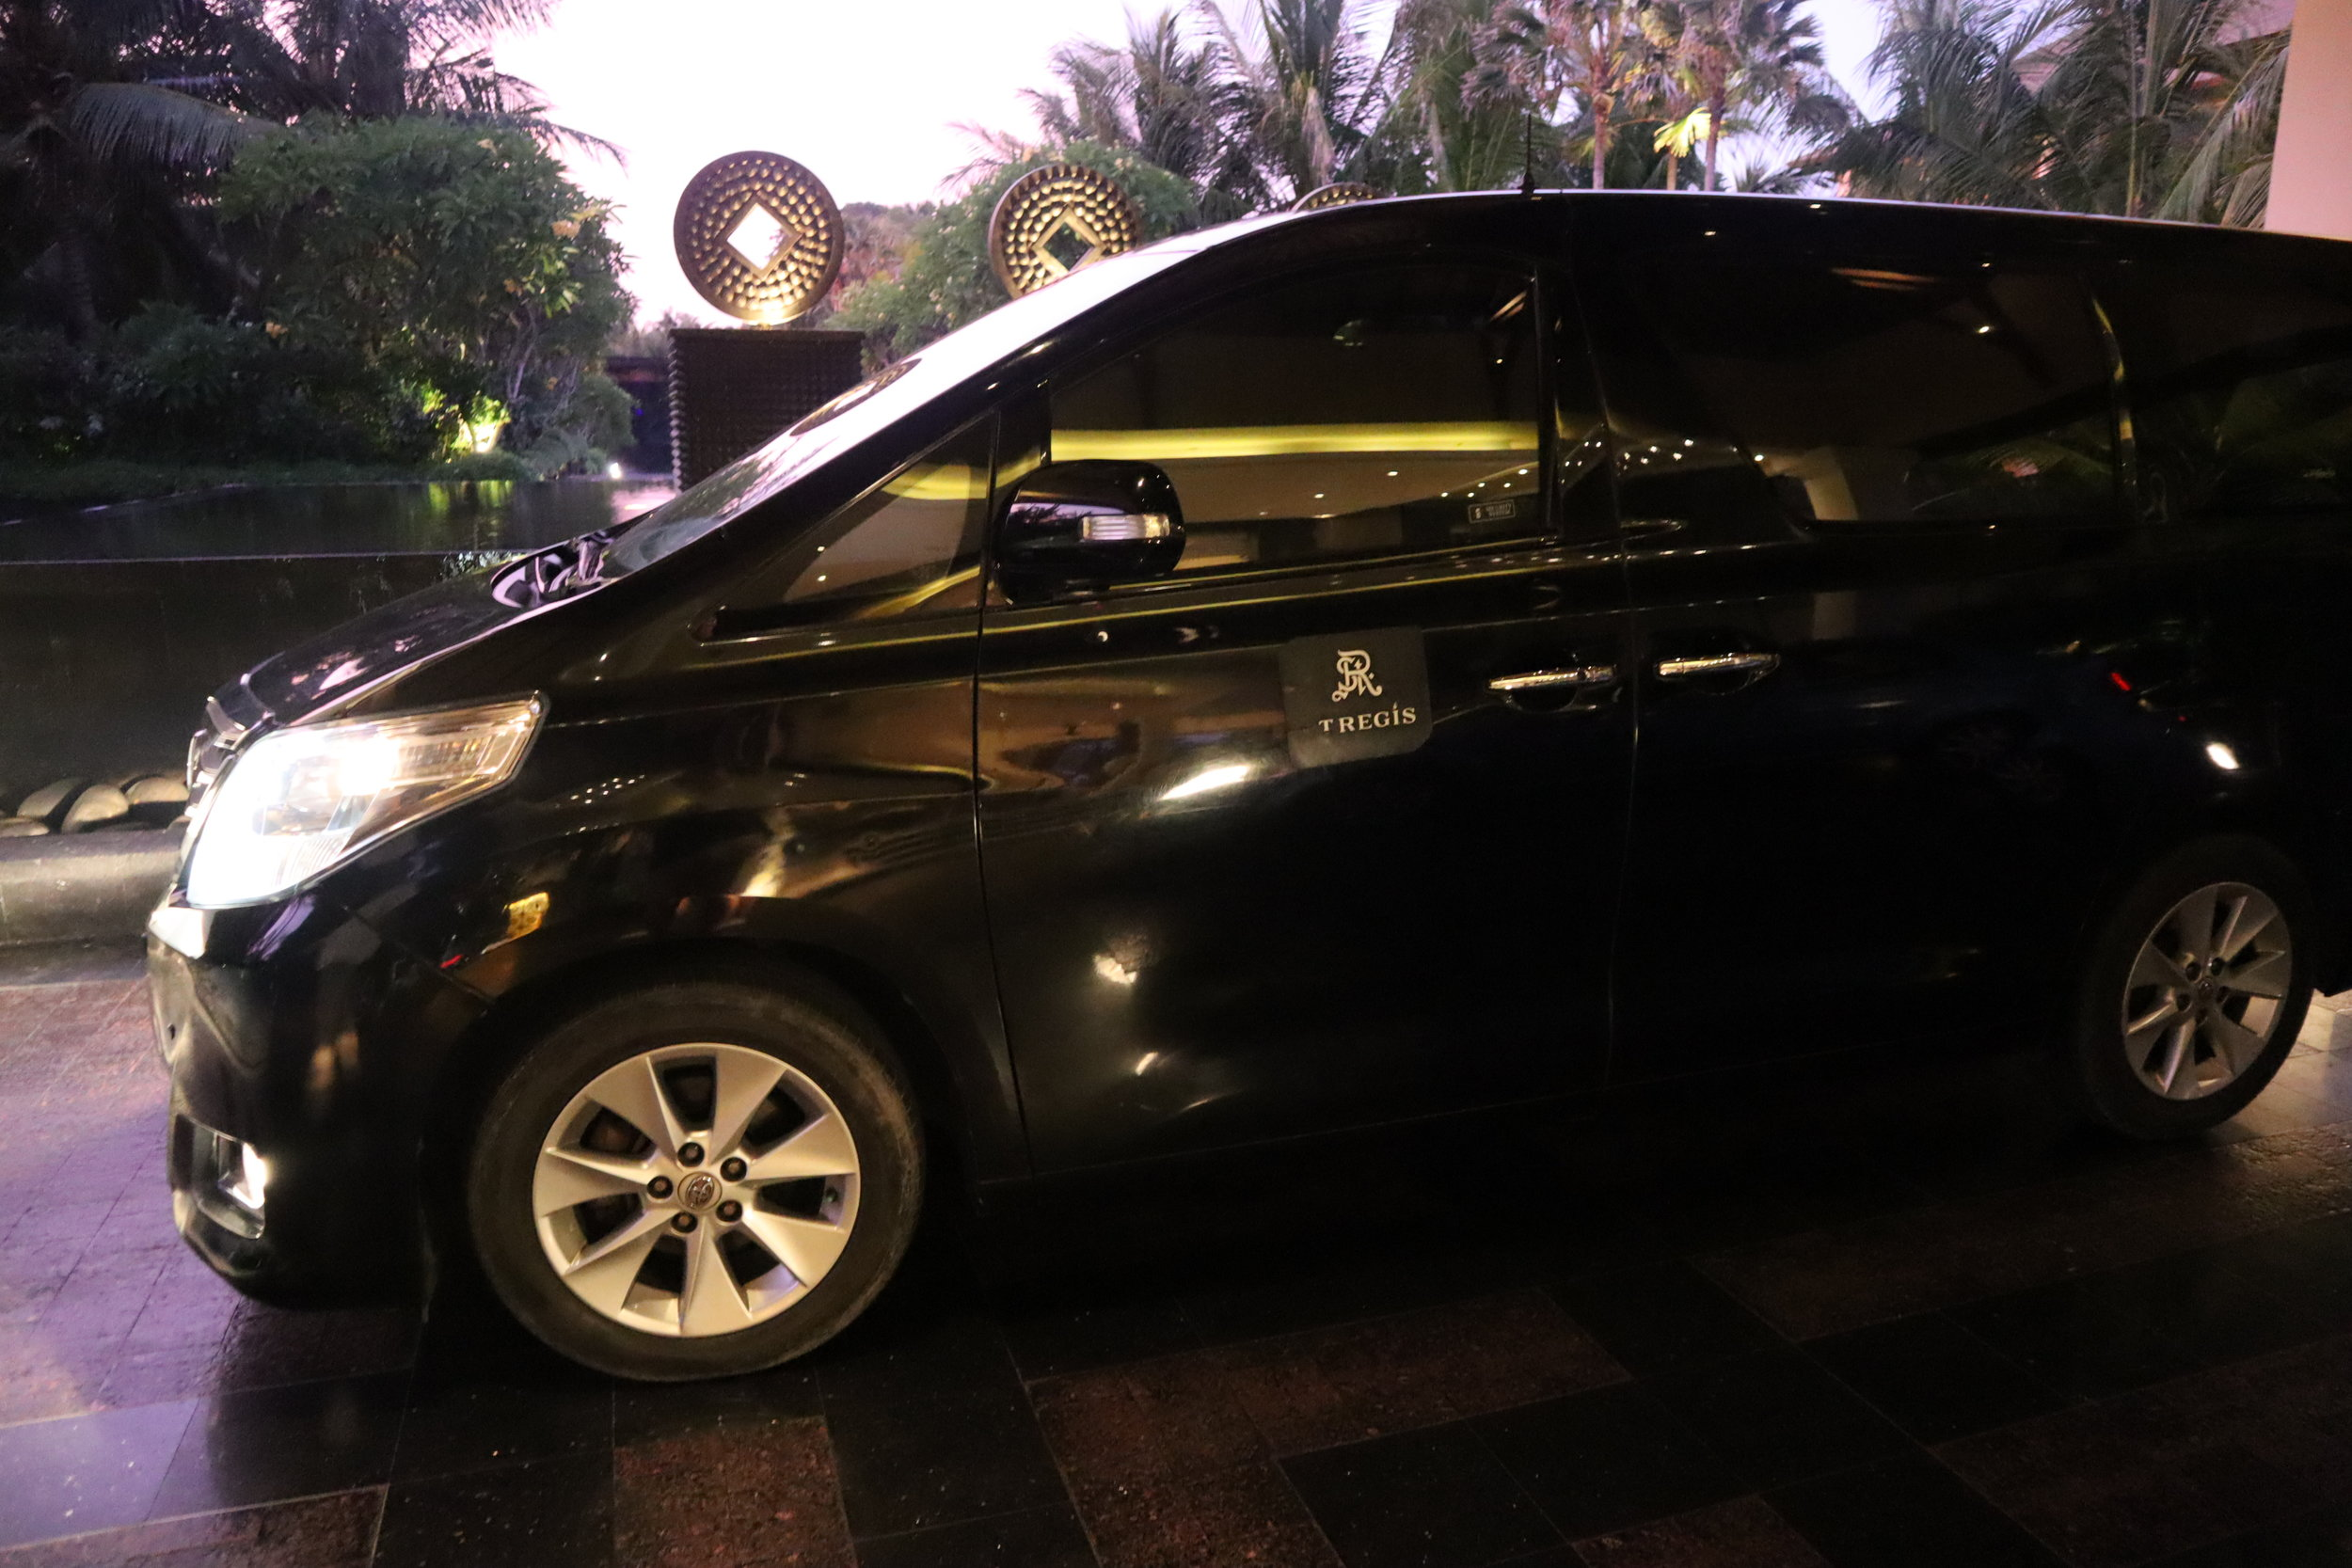 St. Regis Bali – Complimentary airport transfer